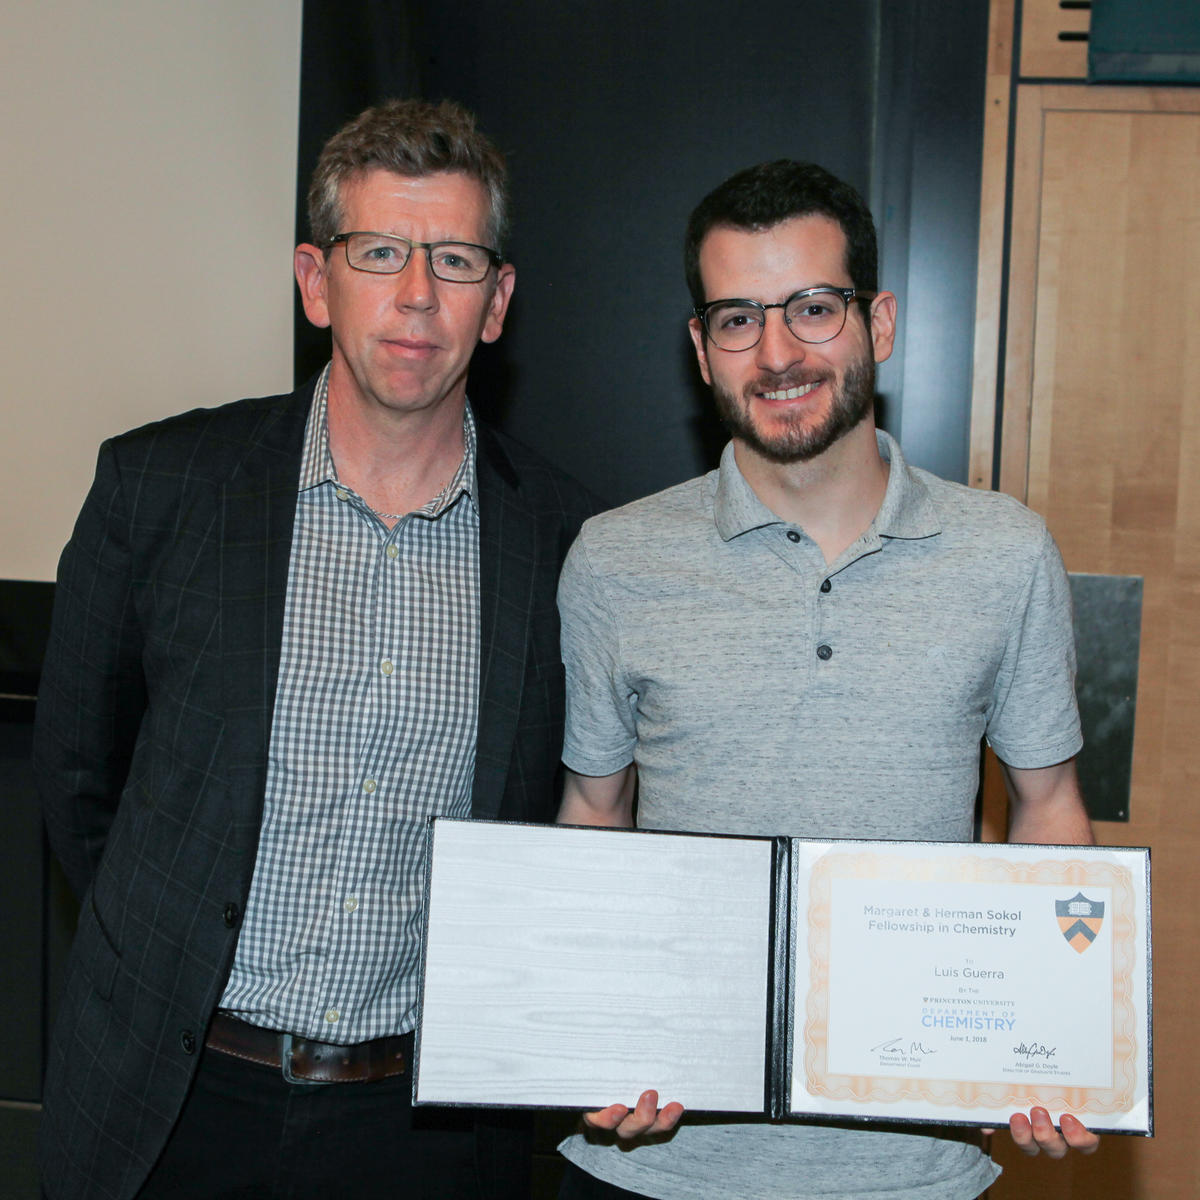 Tom Muir and Luis Guerra (Muir and Yang labs), recipient of the Margaret & Herman Sokol Fellowship in Chemistry